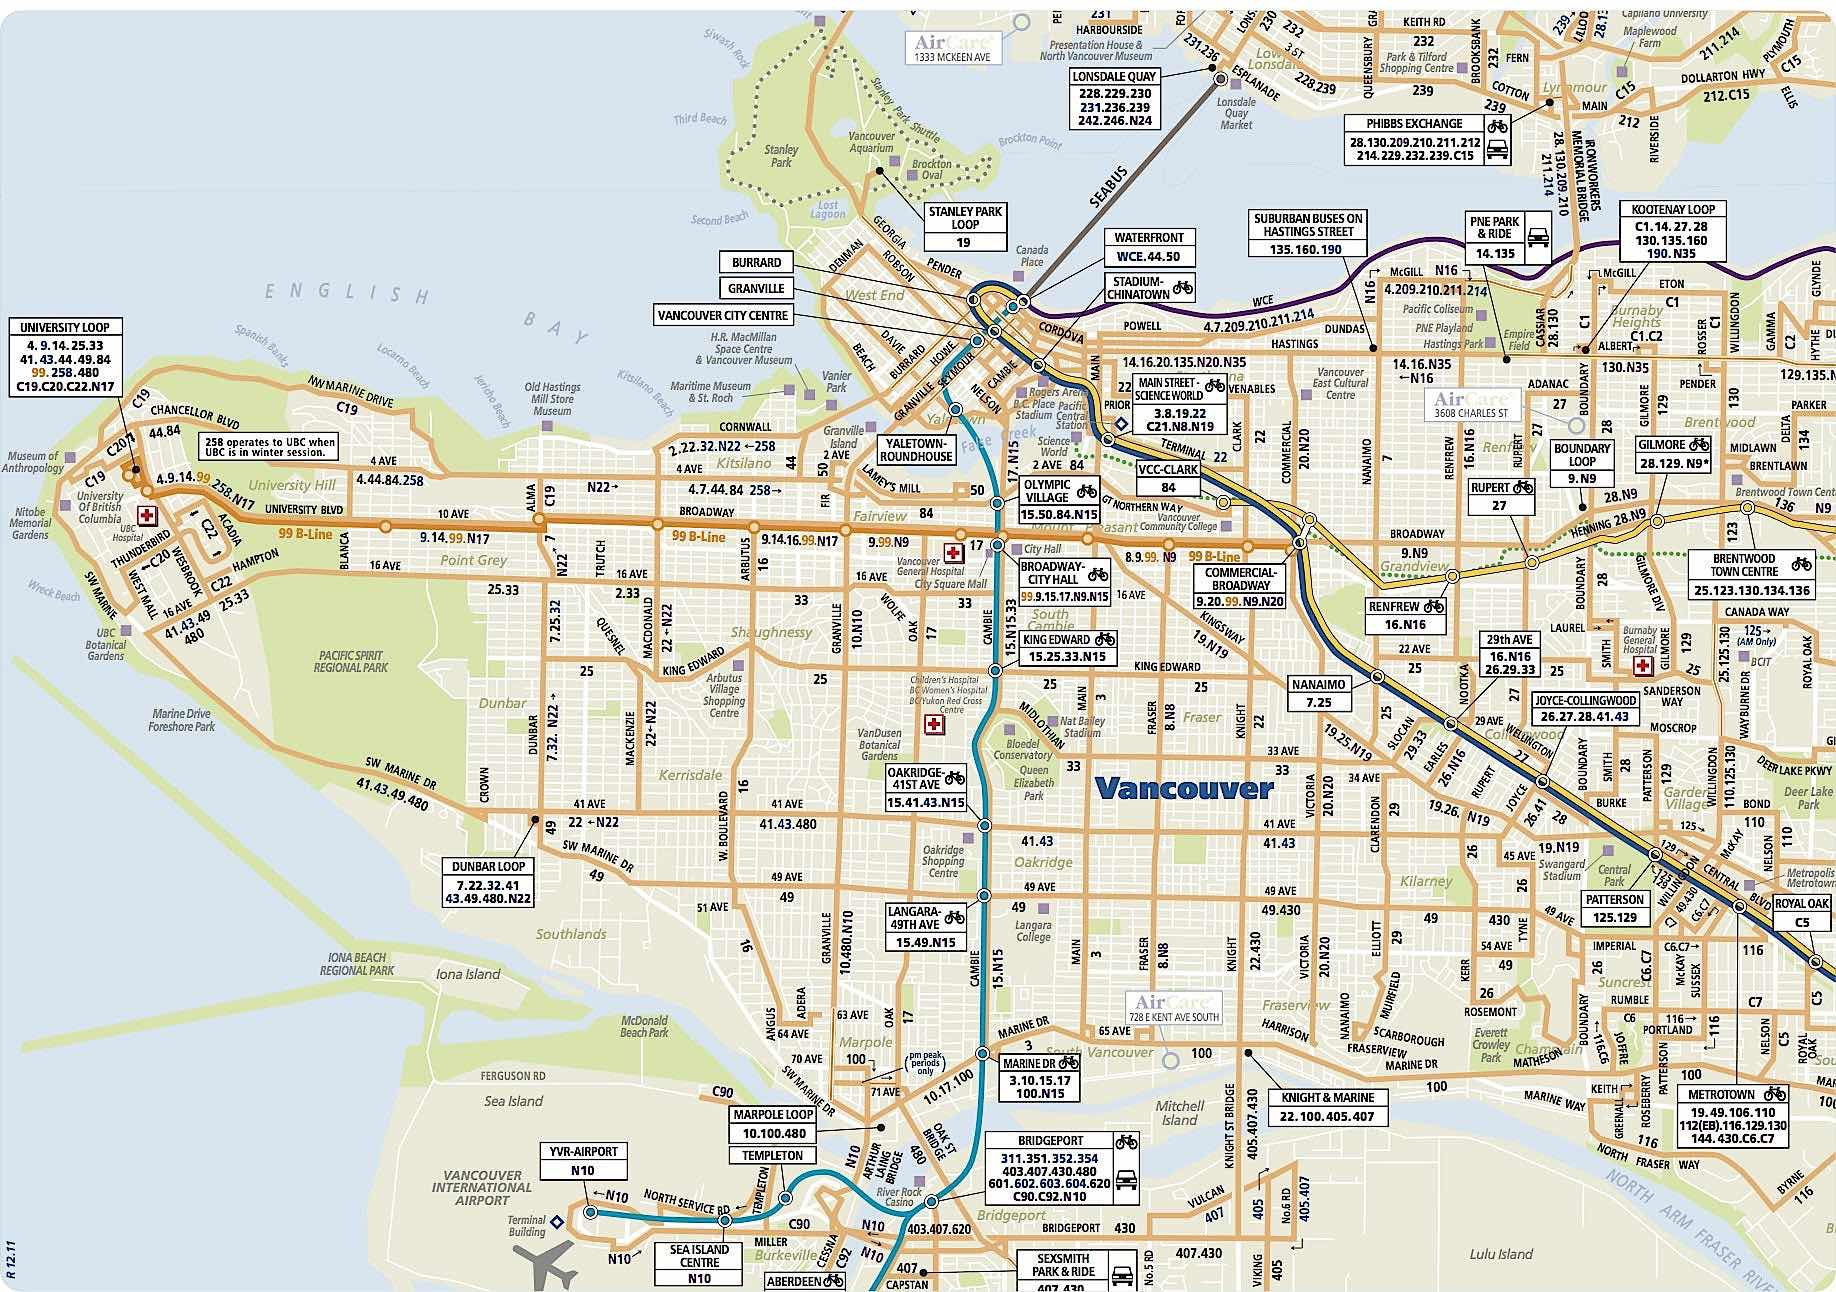 Map of Vancouver neighborhoods